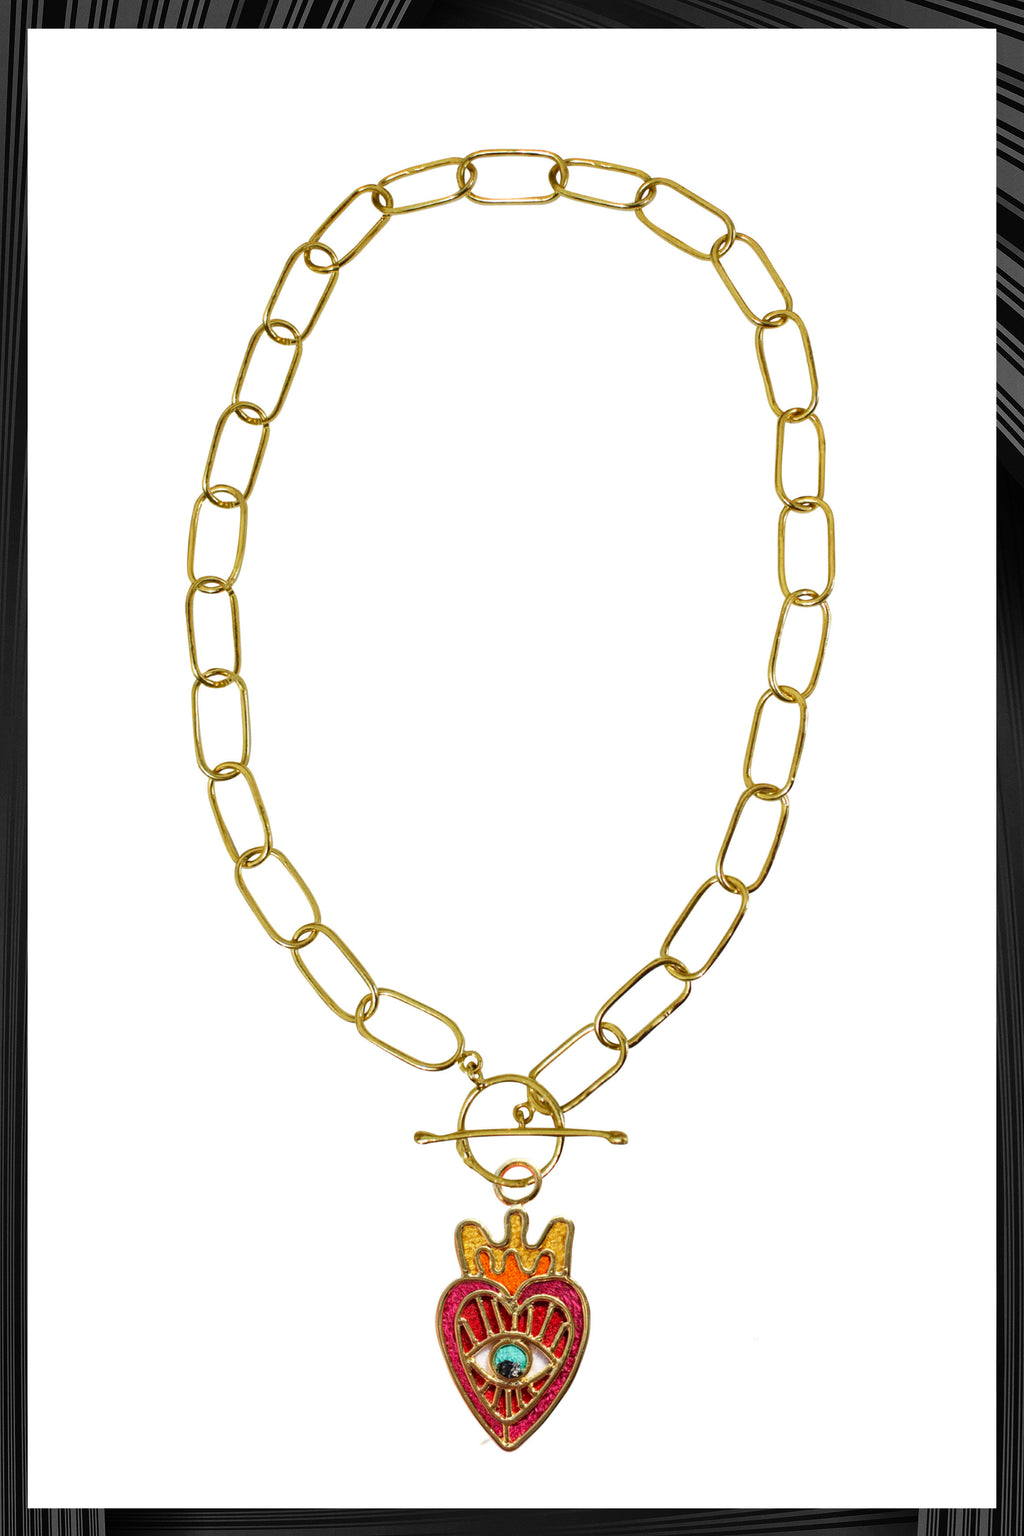 Milagros Del Corazon XL Chain Link Necklace | Free Delivery - 3 Weeks Shipping